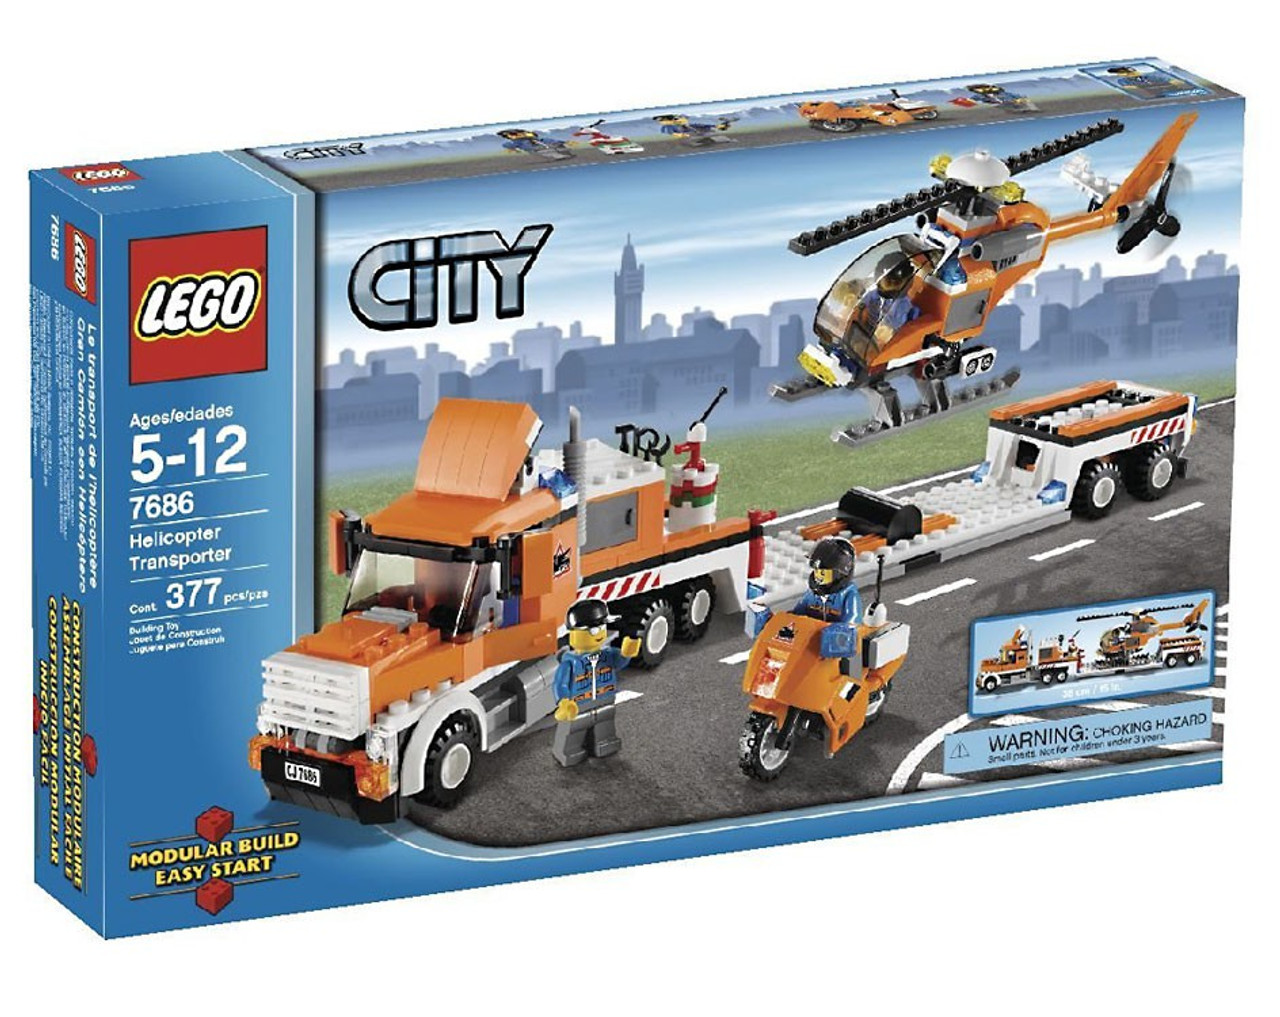 LEGO City Helicopter Transporter Set #7686